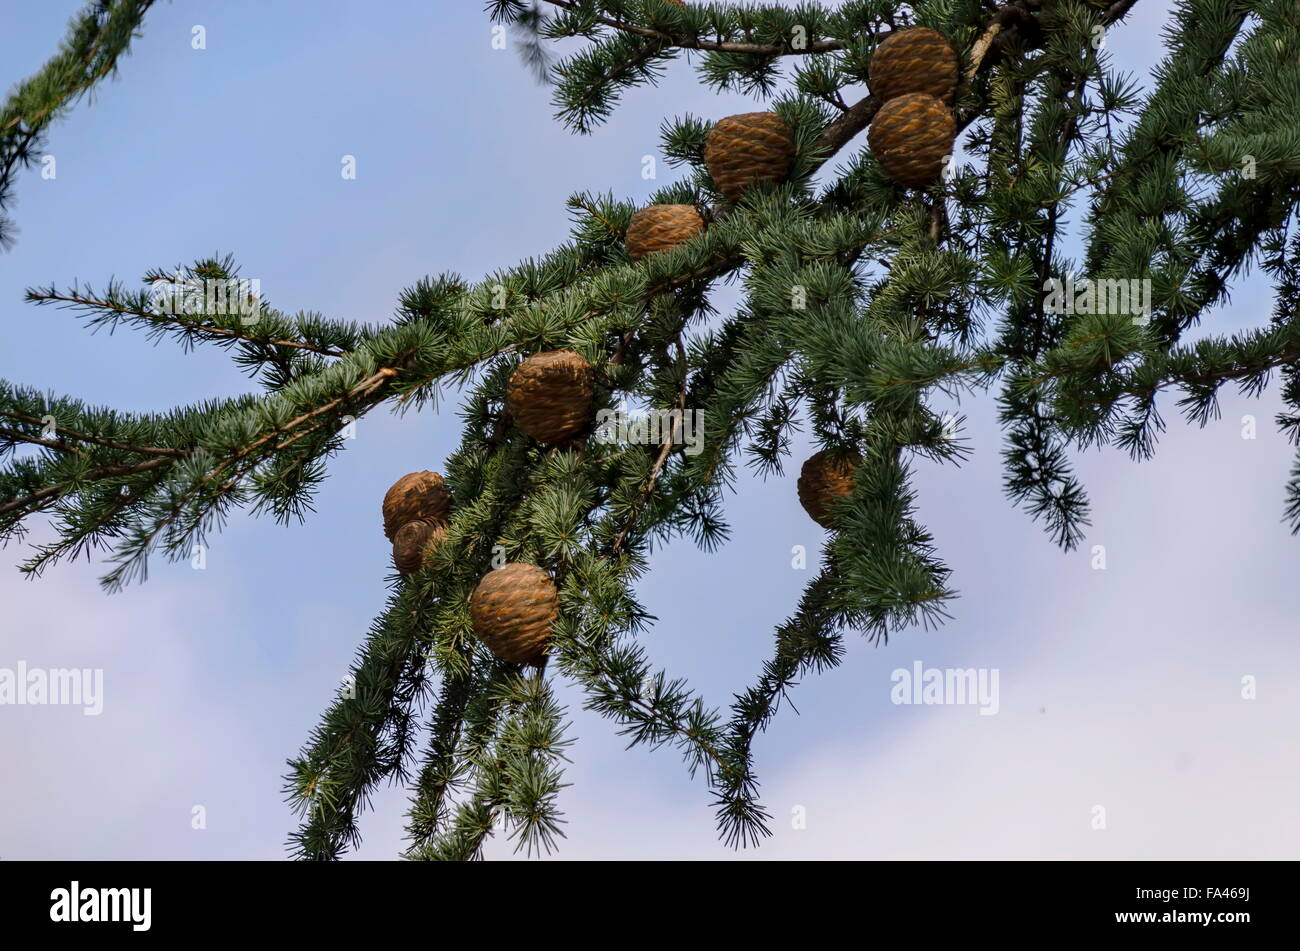 Branch and twig of unknown conifer tree, Bulgaria - Stock Image